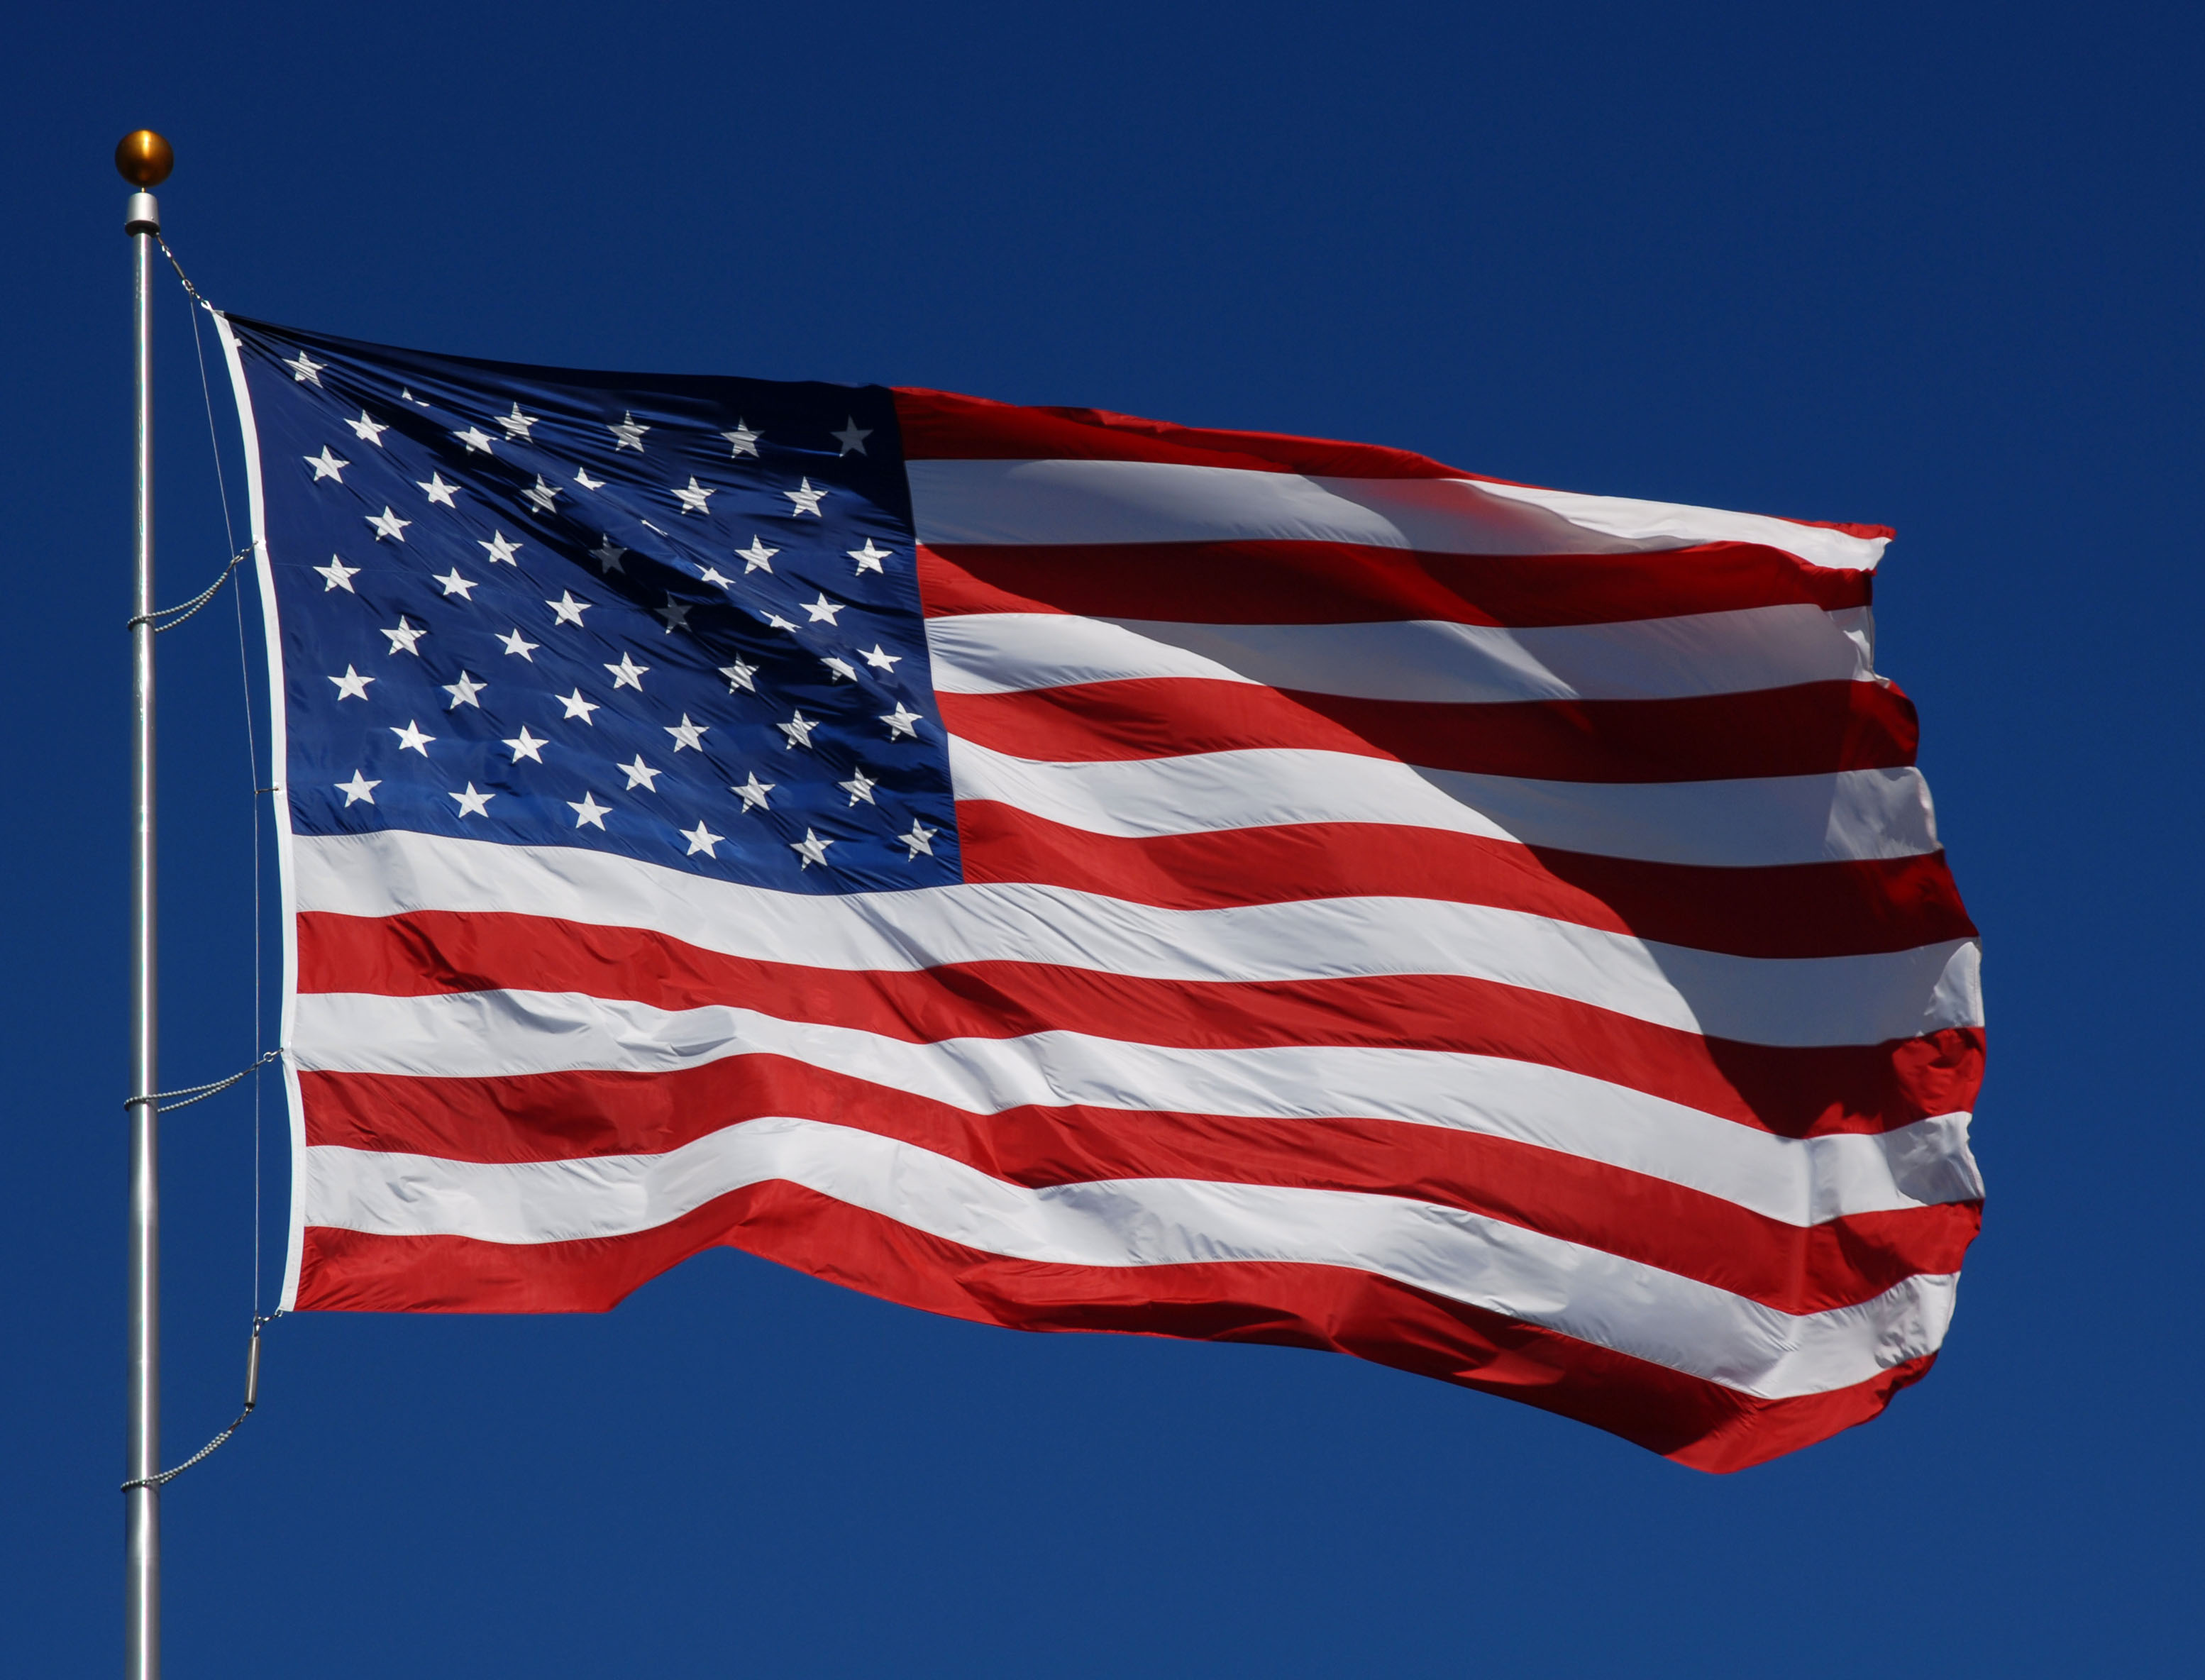 amusing-full-hd-wallpaper-usa-flag-for-background-wallpaper-hd